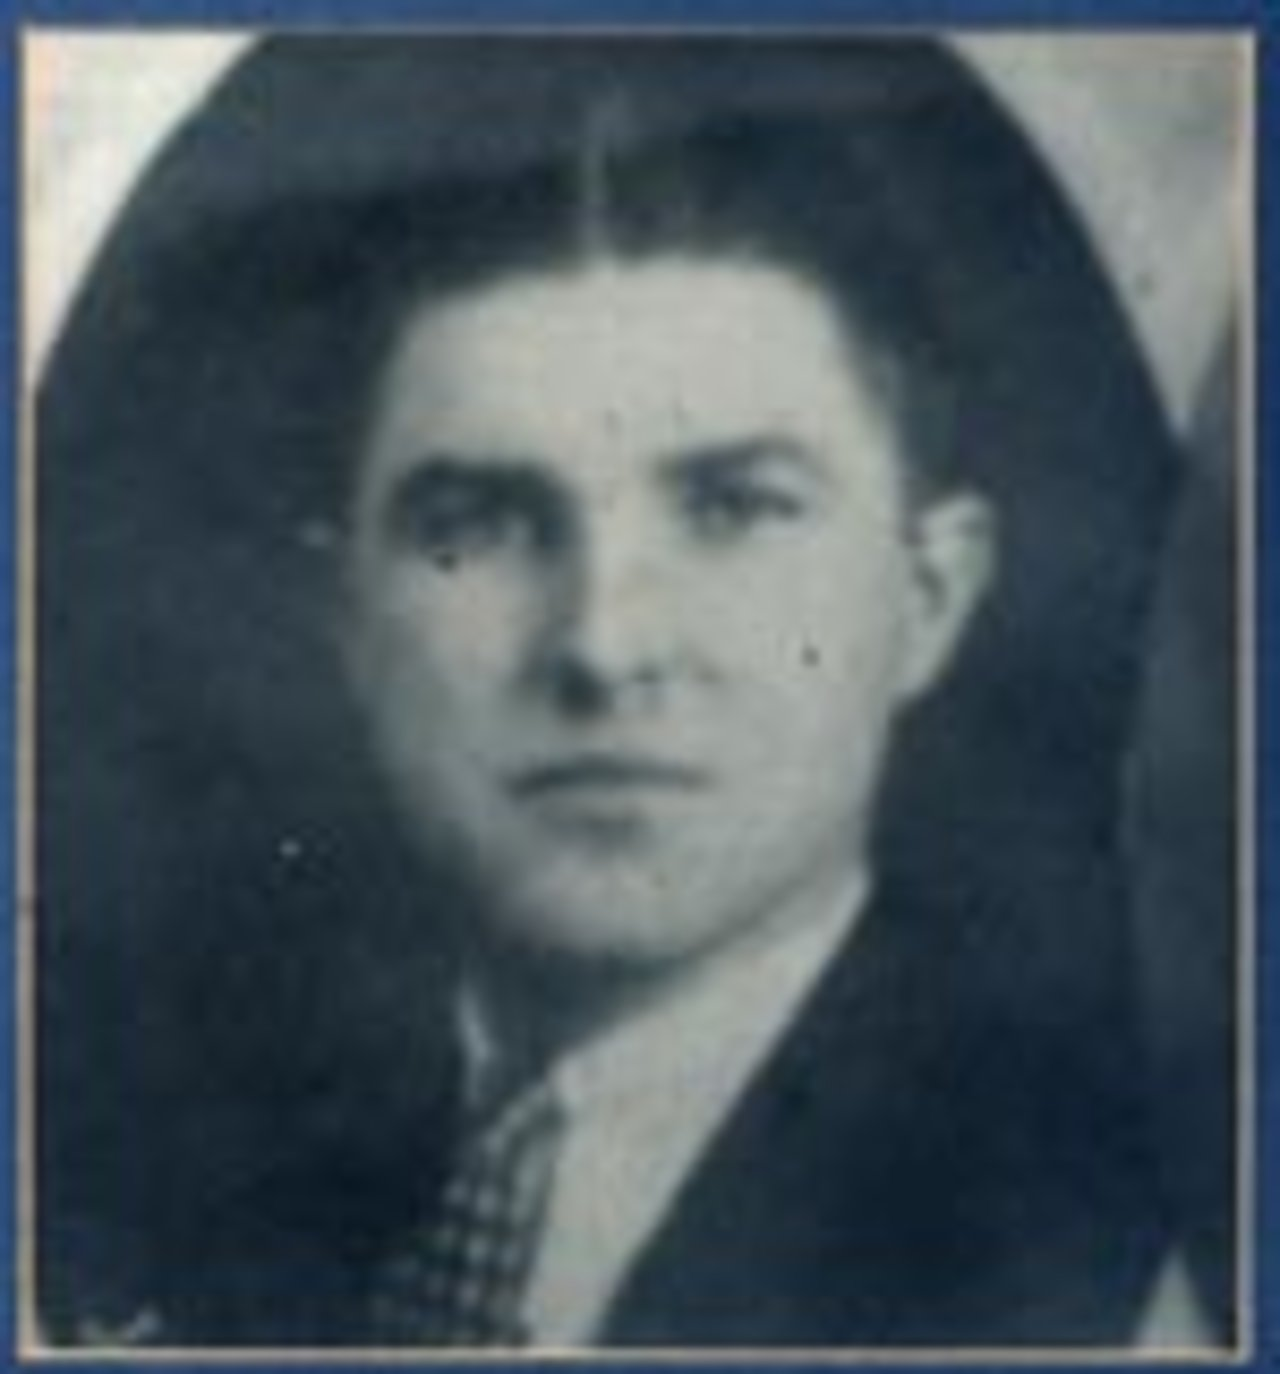 rooper Jerome B. Nugent, 25, died on October 13, 1933 from a fractured skull caused when he was thrown from his motorcycle on the Forestville Sheridan Road near Sheridan, Chautauqua County. At the time of the accident, Trooper Nugent was assigned to patrol the Lake Shore area of the Sheridan station. While on patrol, a large collie dog ran from a farm house directly into the front wheel of his motorcycle. Trooper Nugent was taken to Brooke Memorial Hospital in Dunkirk, but succumbed due to injuries.